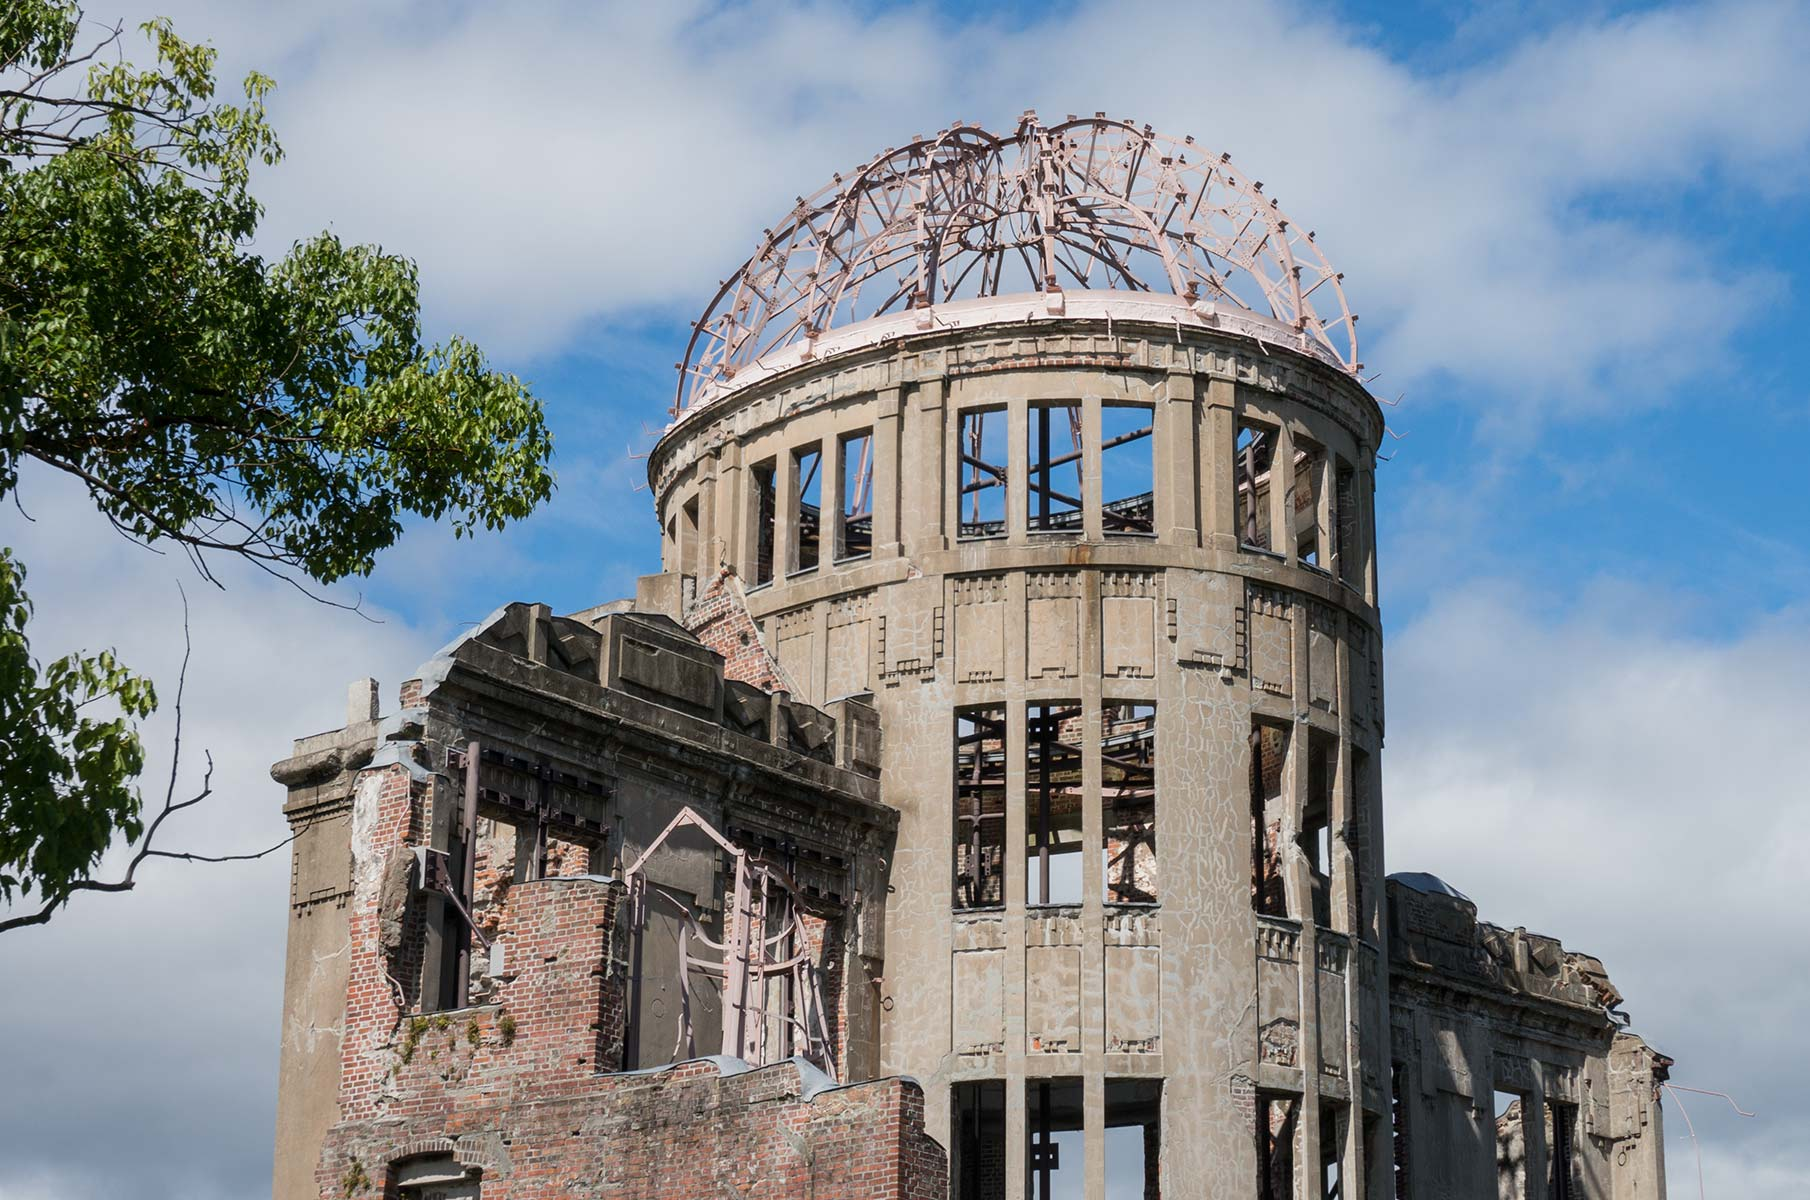 Friedensdenkmal A-Bomb Dom in Hiroshima, Japan